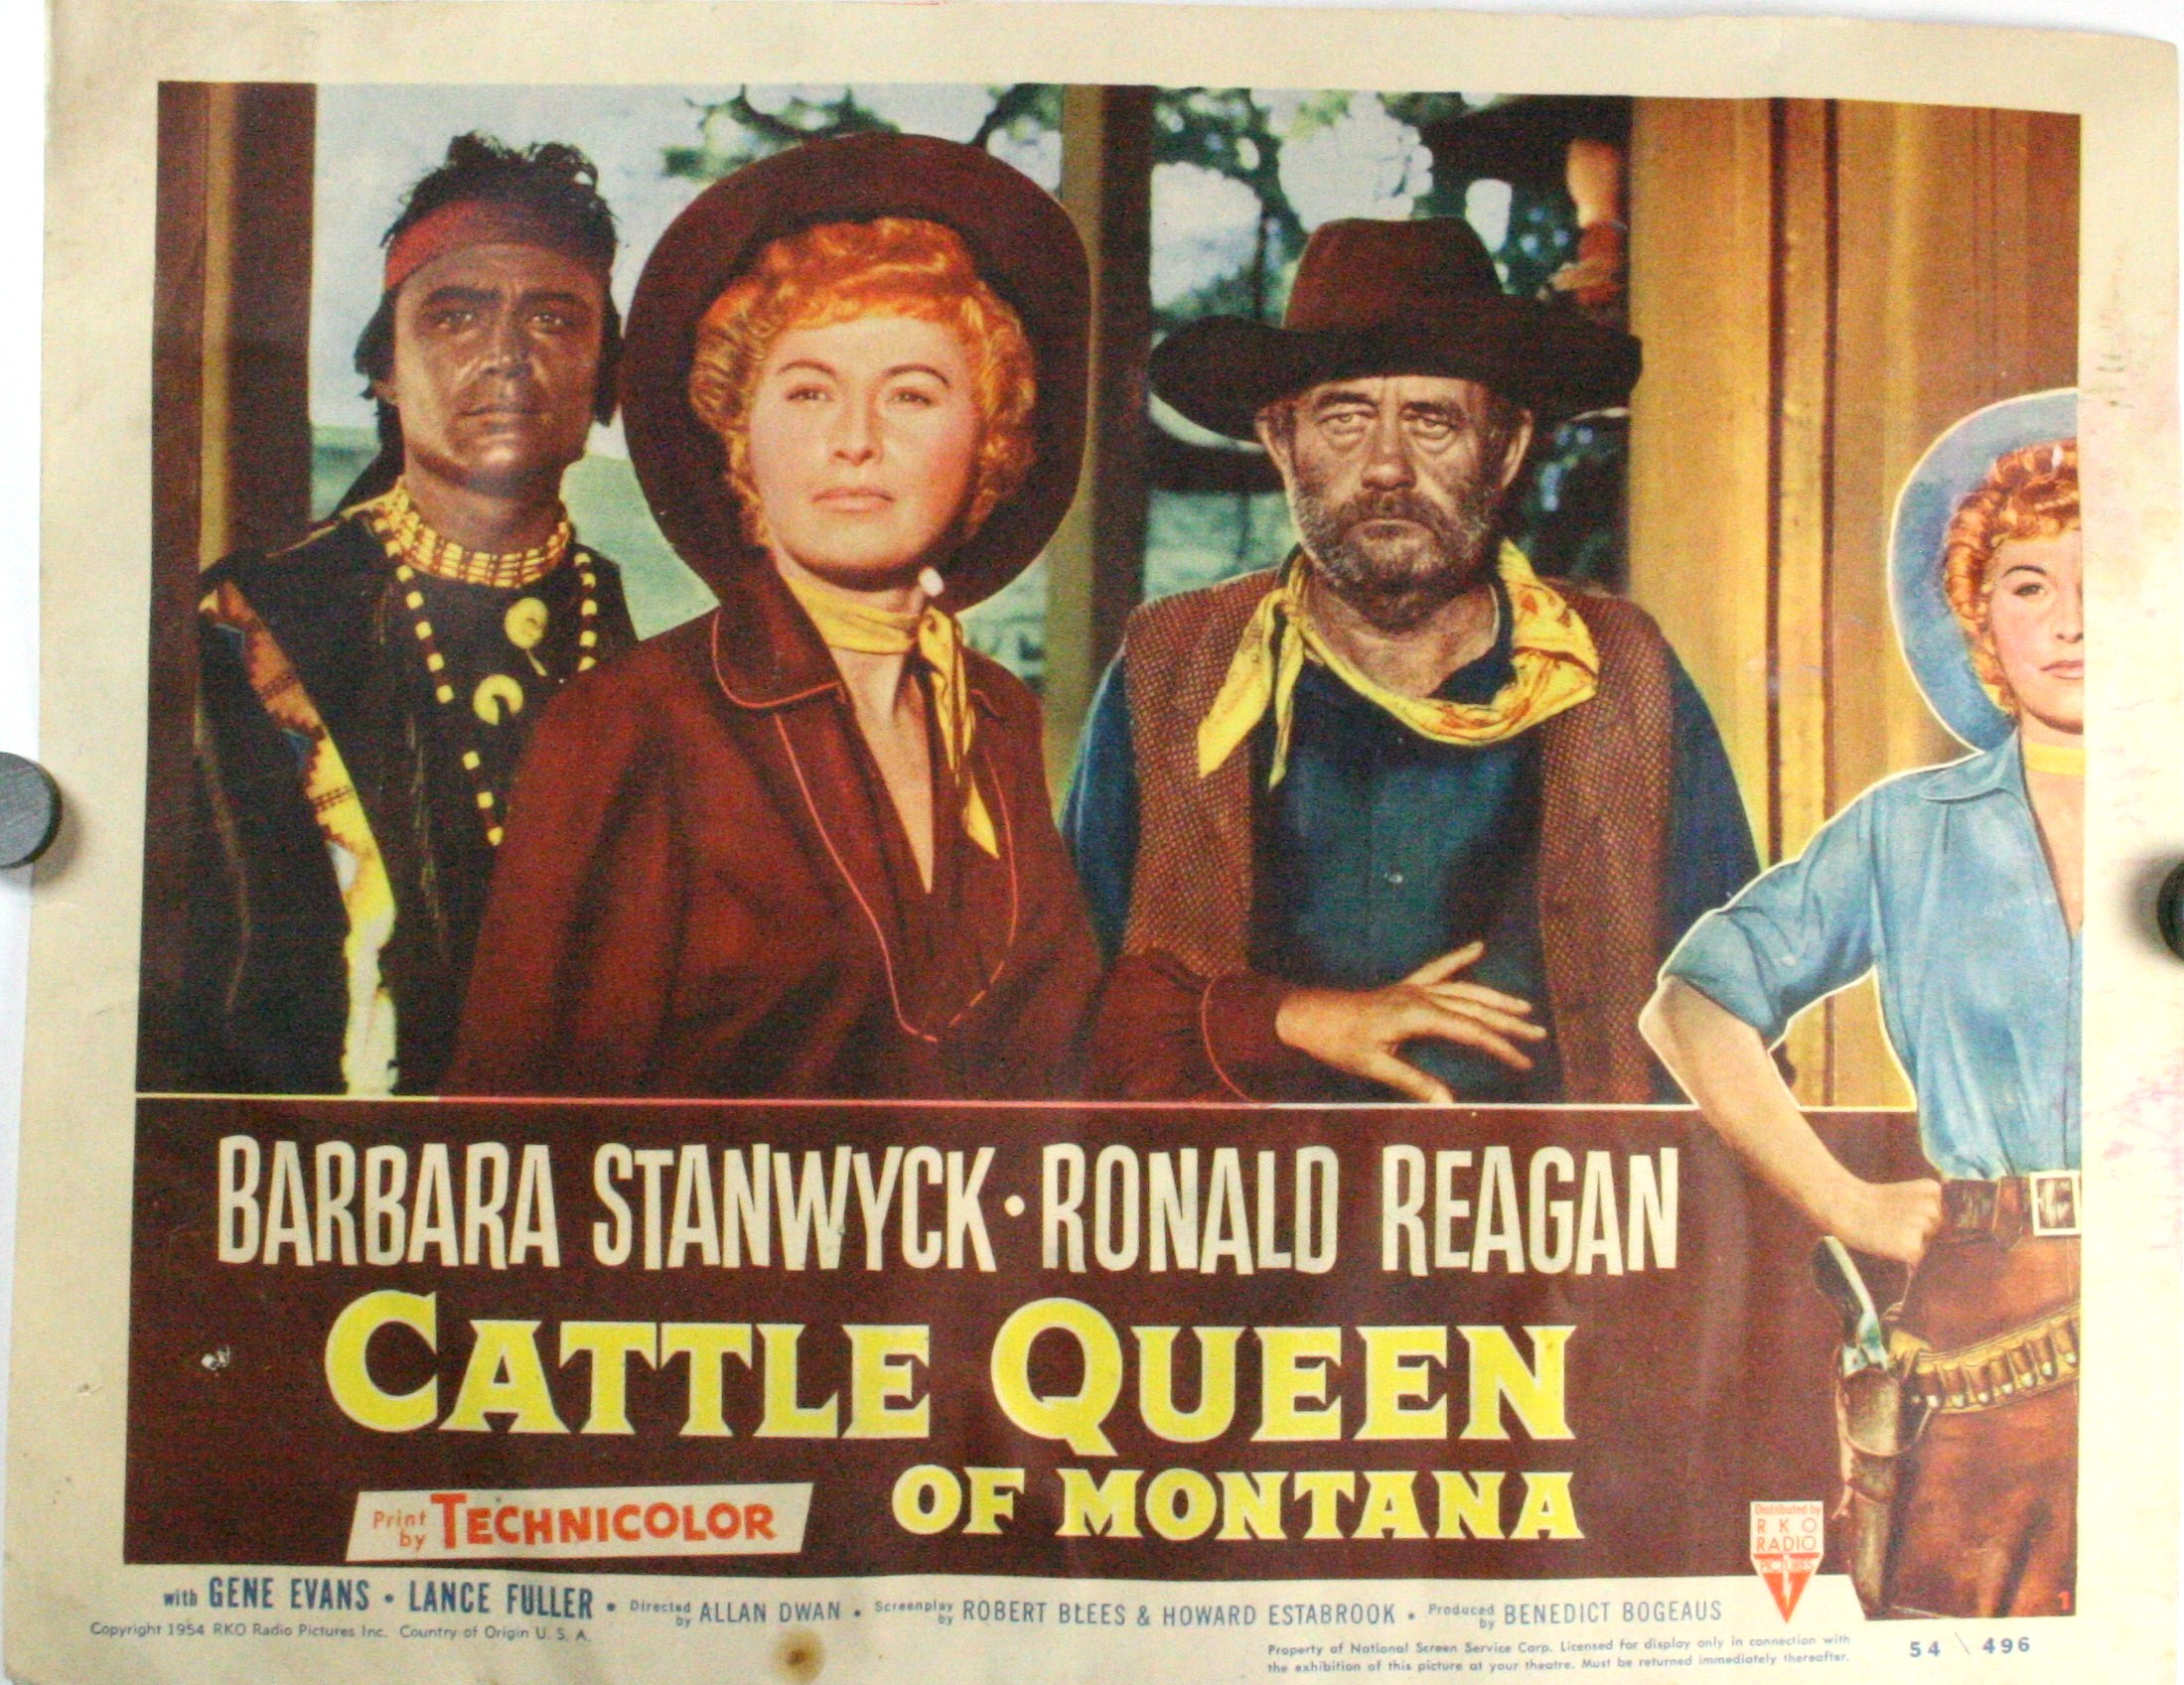 Cattle Queen Of Montana Starring Ronald Reagan Set Of 7